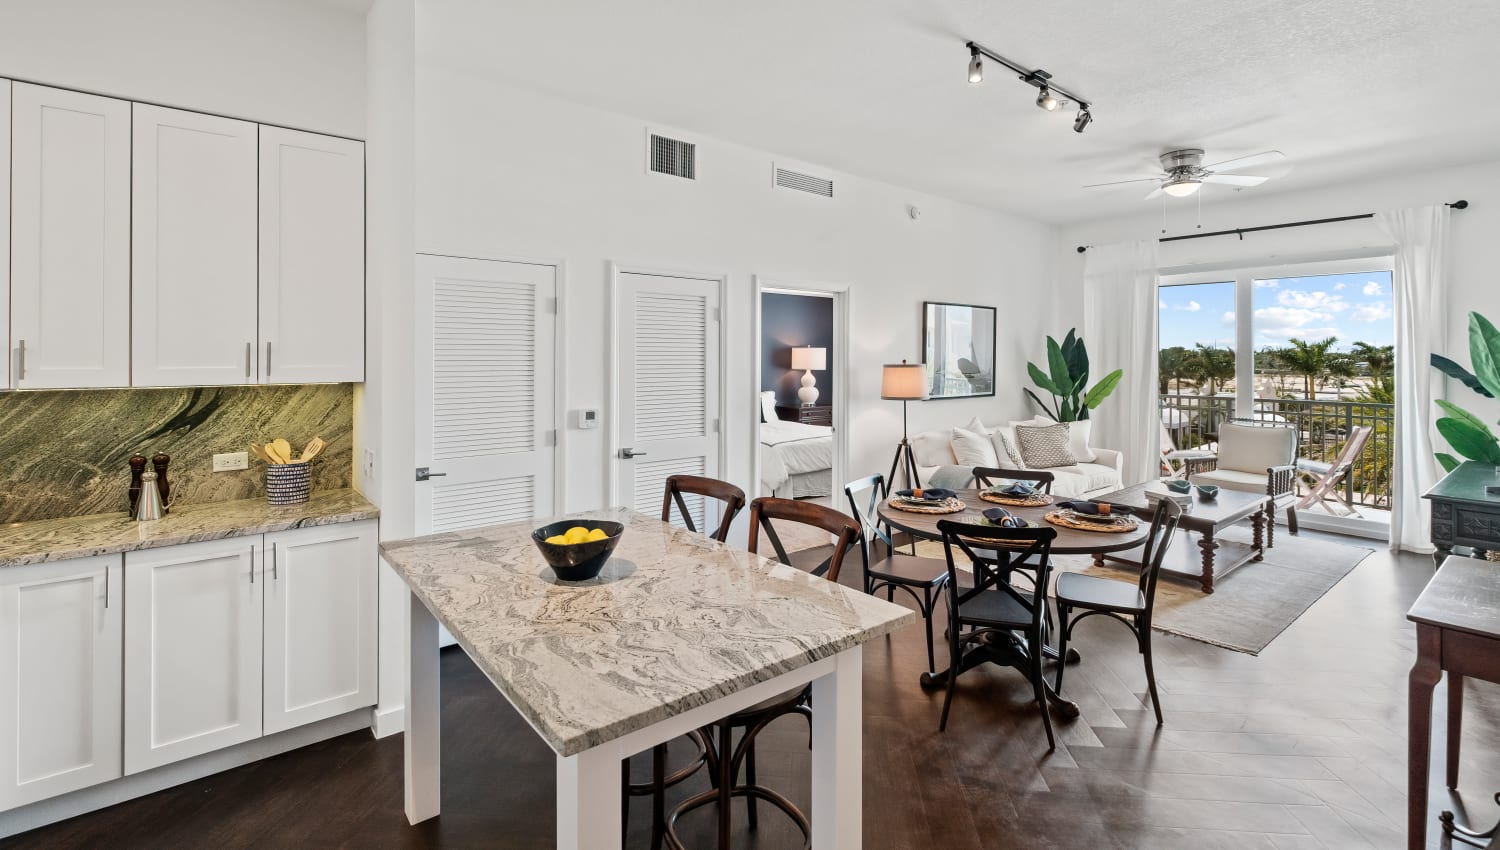 Open dining and living area with private balcony access at Town Lantana in Lantana, Florida